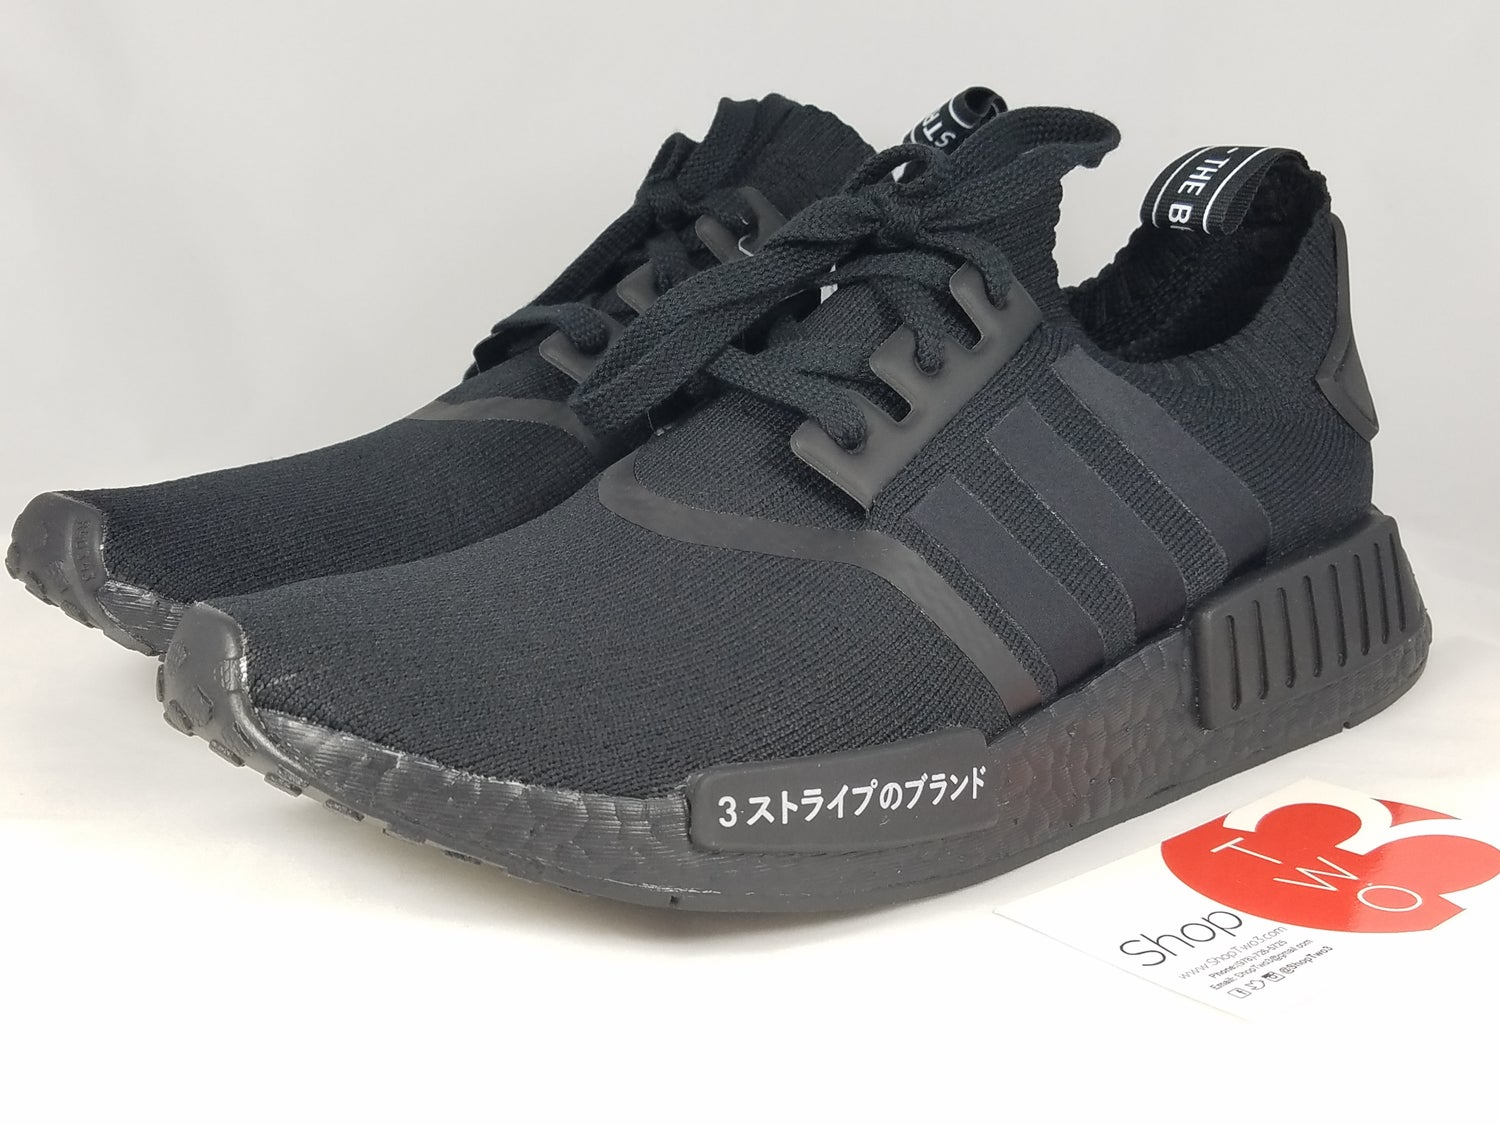 ffcfa221f Image of Adidas NMD R1 Japan 2017